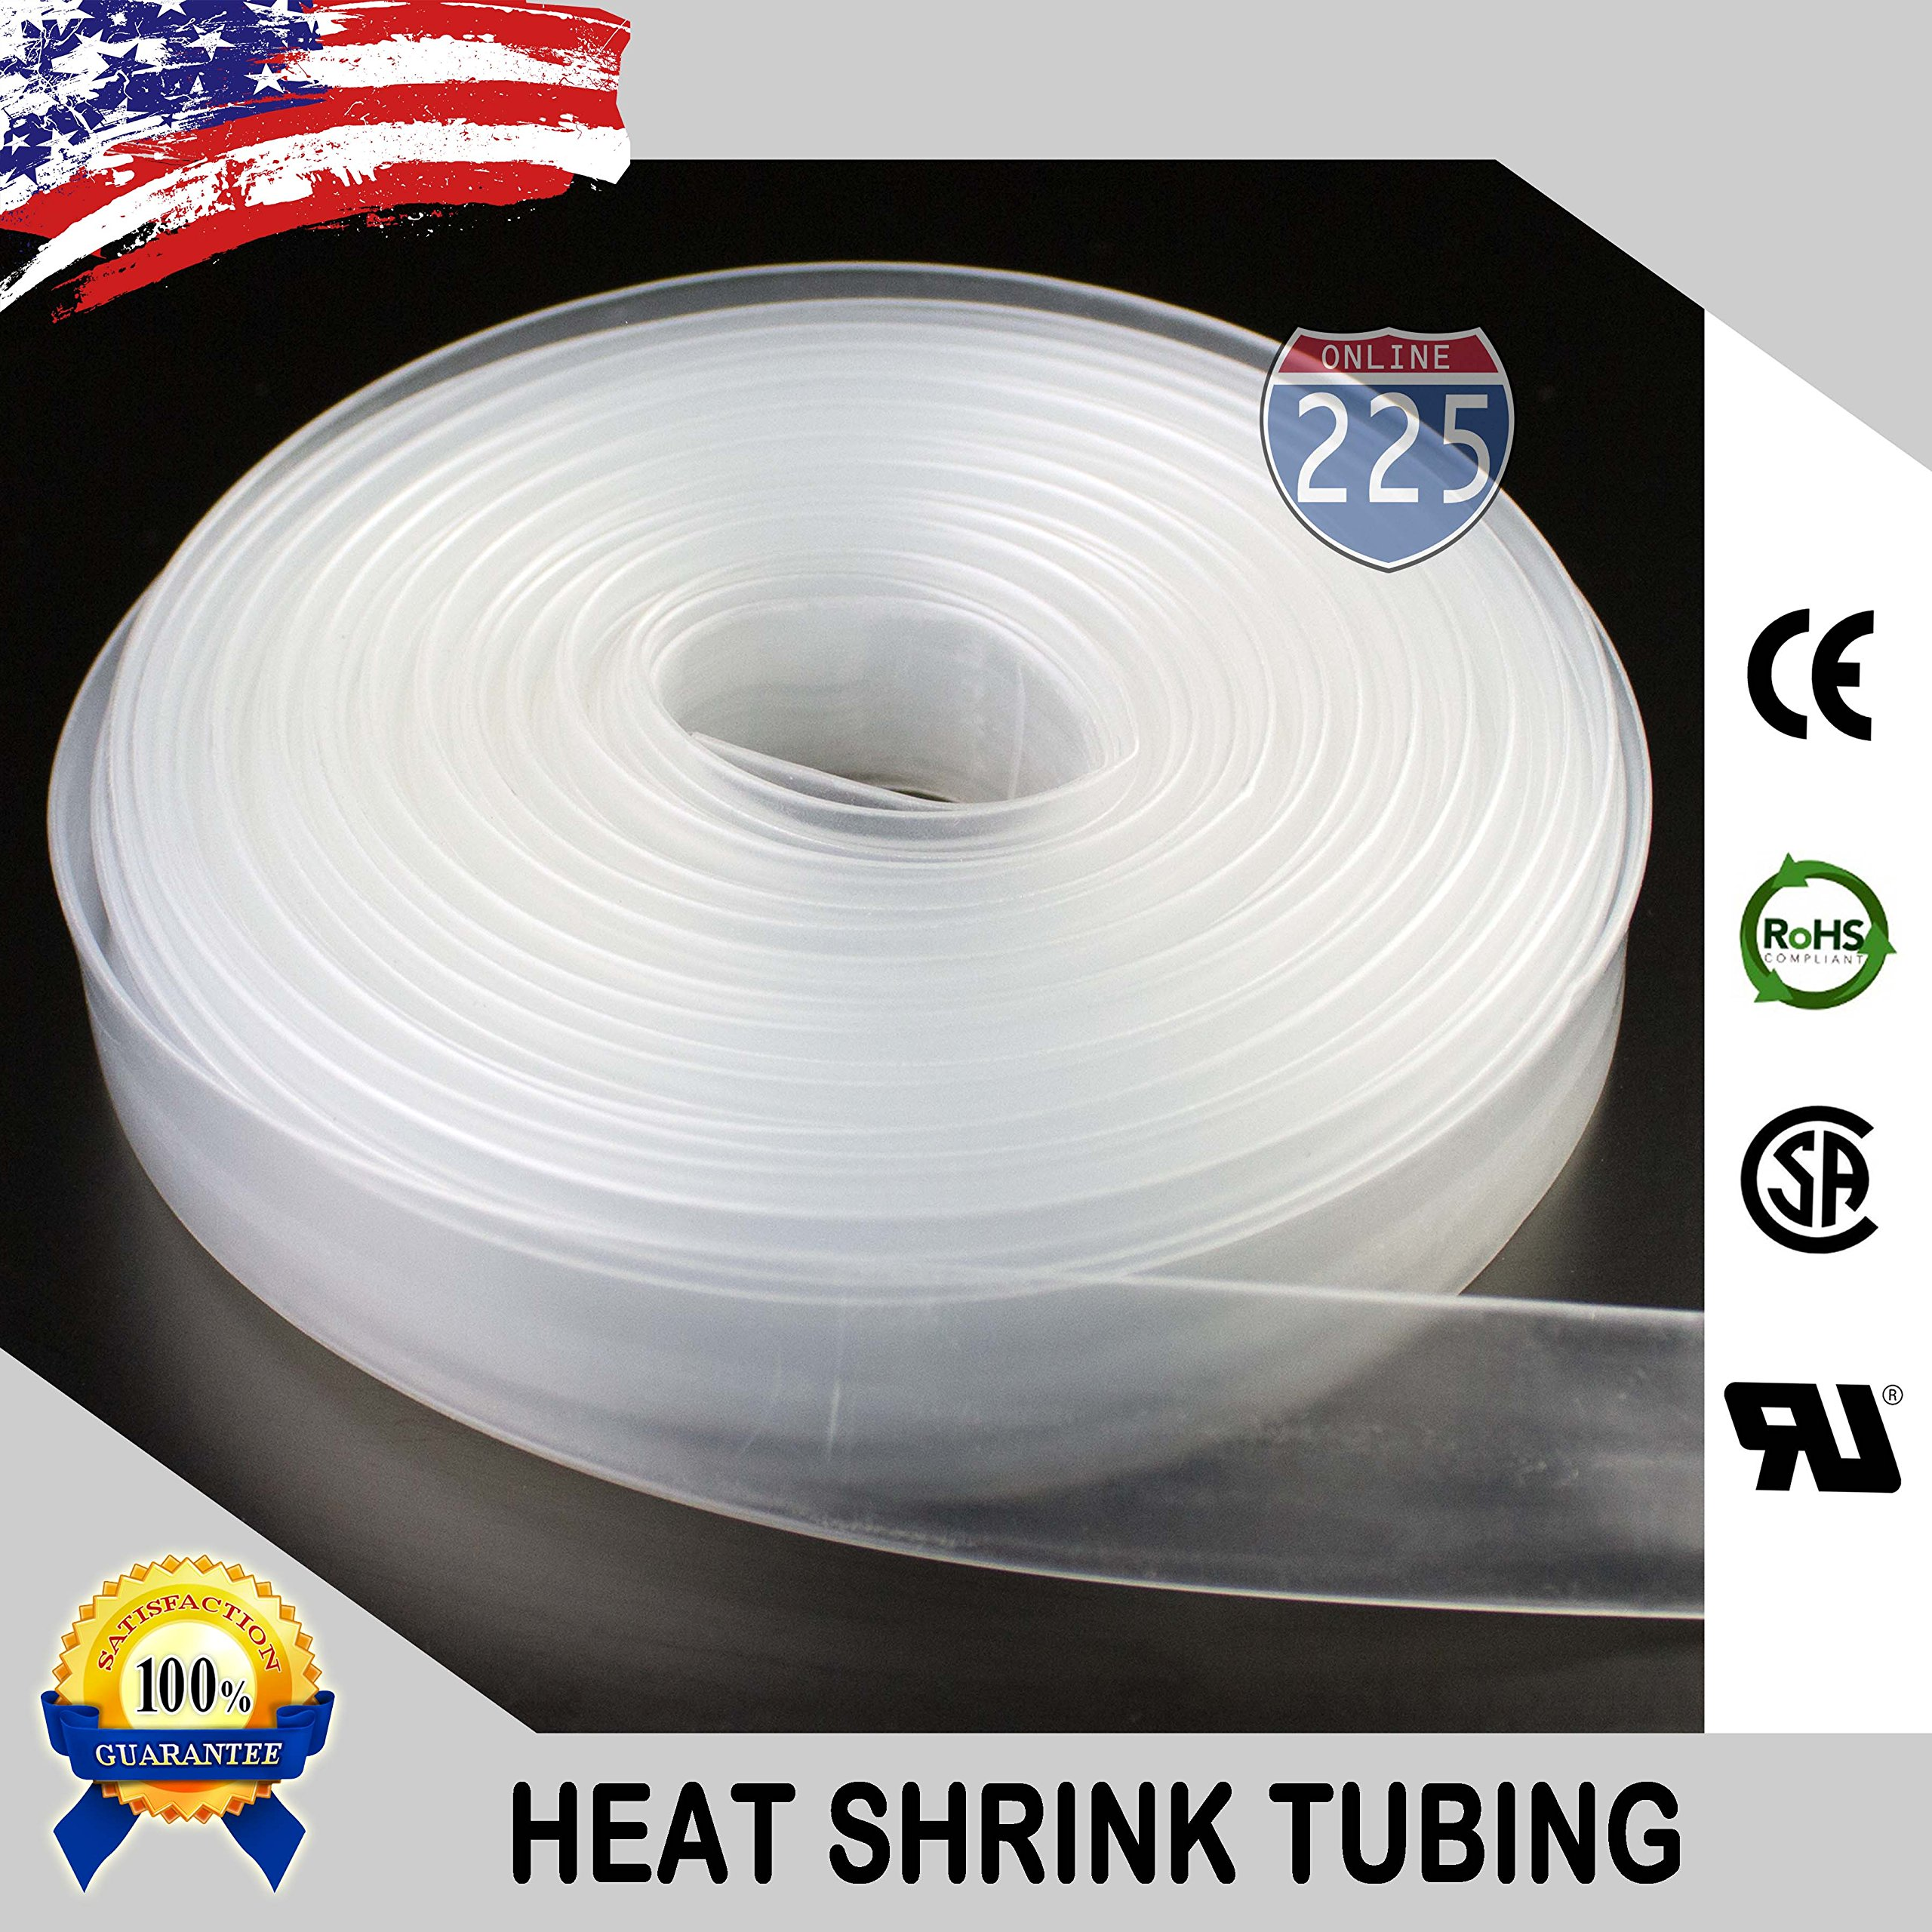 50 FT 5/8'' 16mm Polyolefin Clear Heat Shrink Tubing 2:1 Ratio